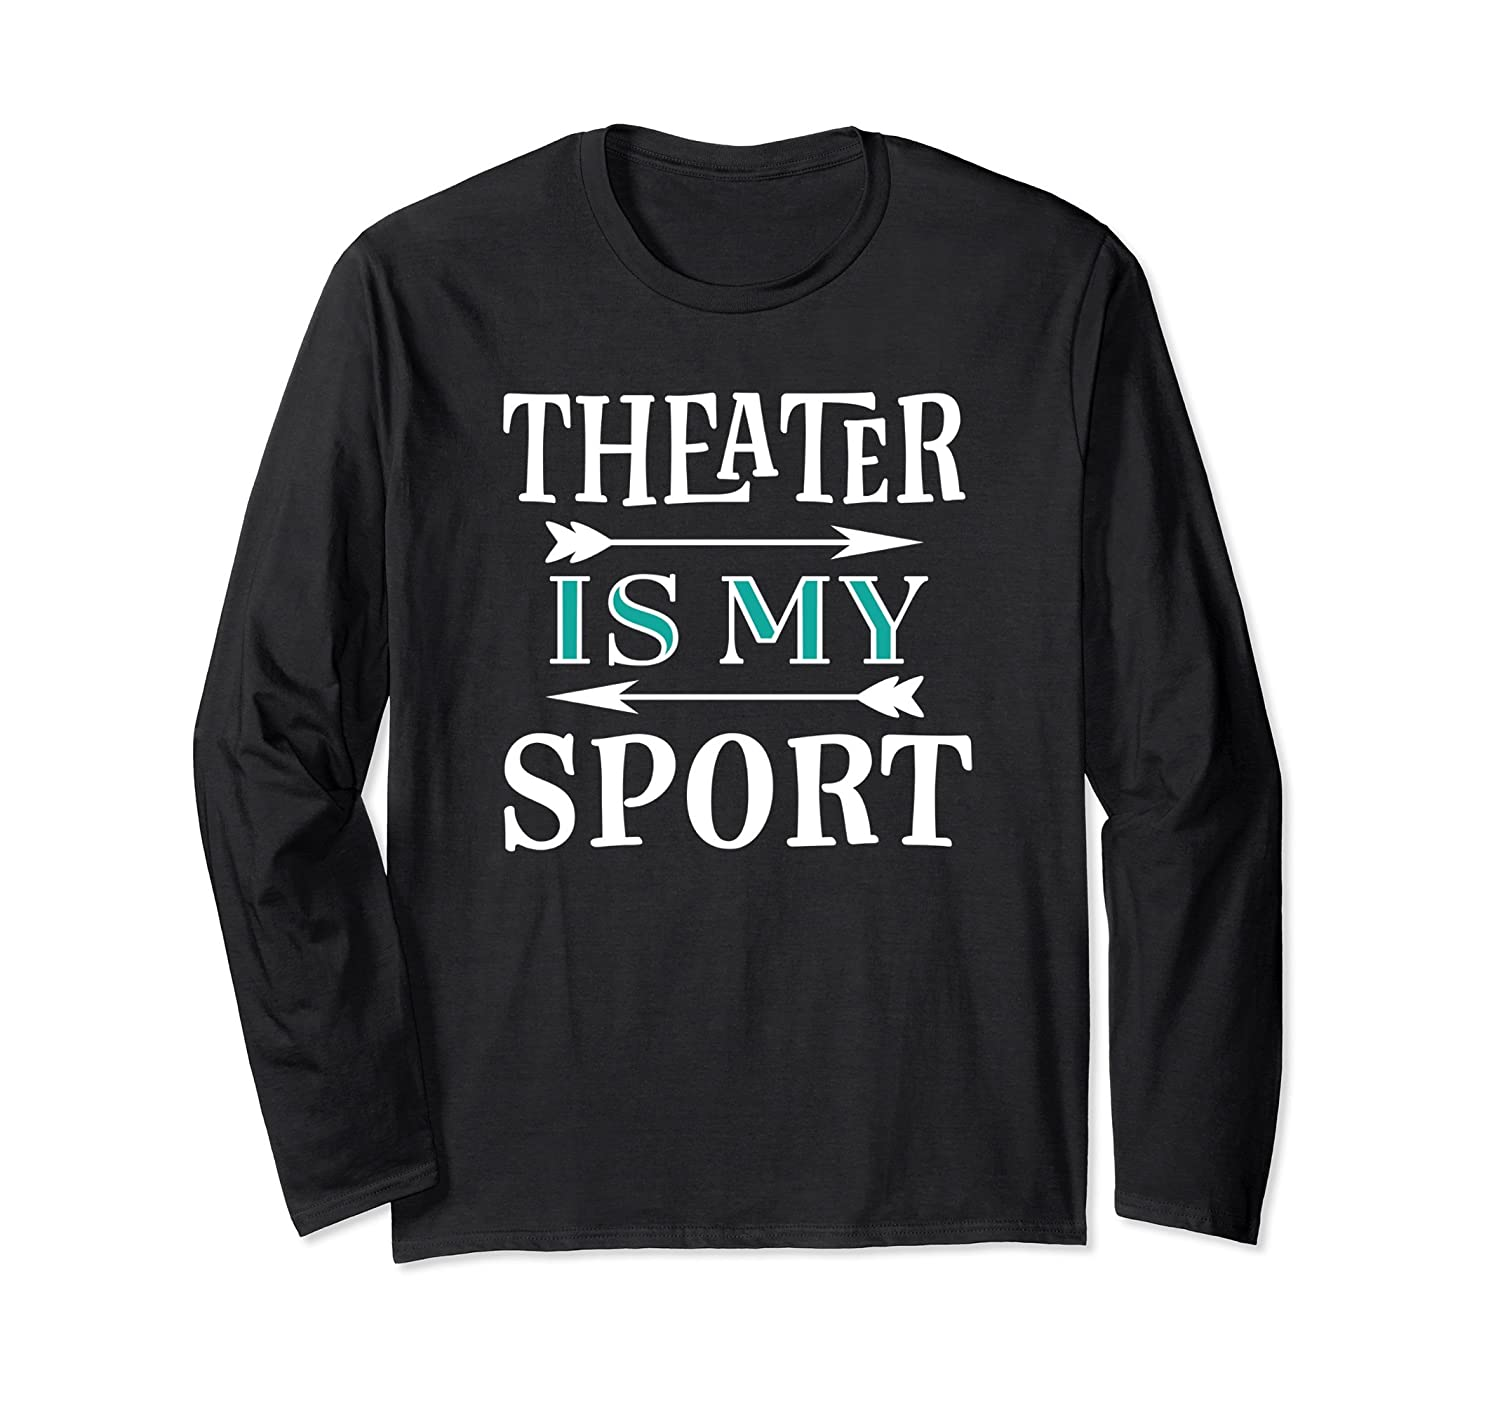 Theatre Is My Sport Long Sleve Shirt Drama Acting Gift-mt